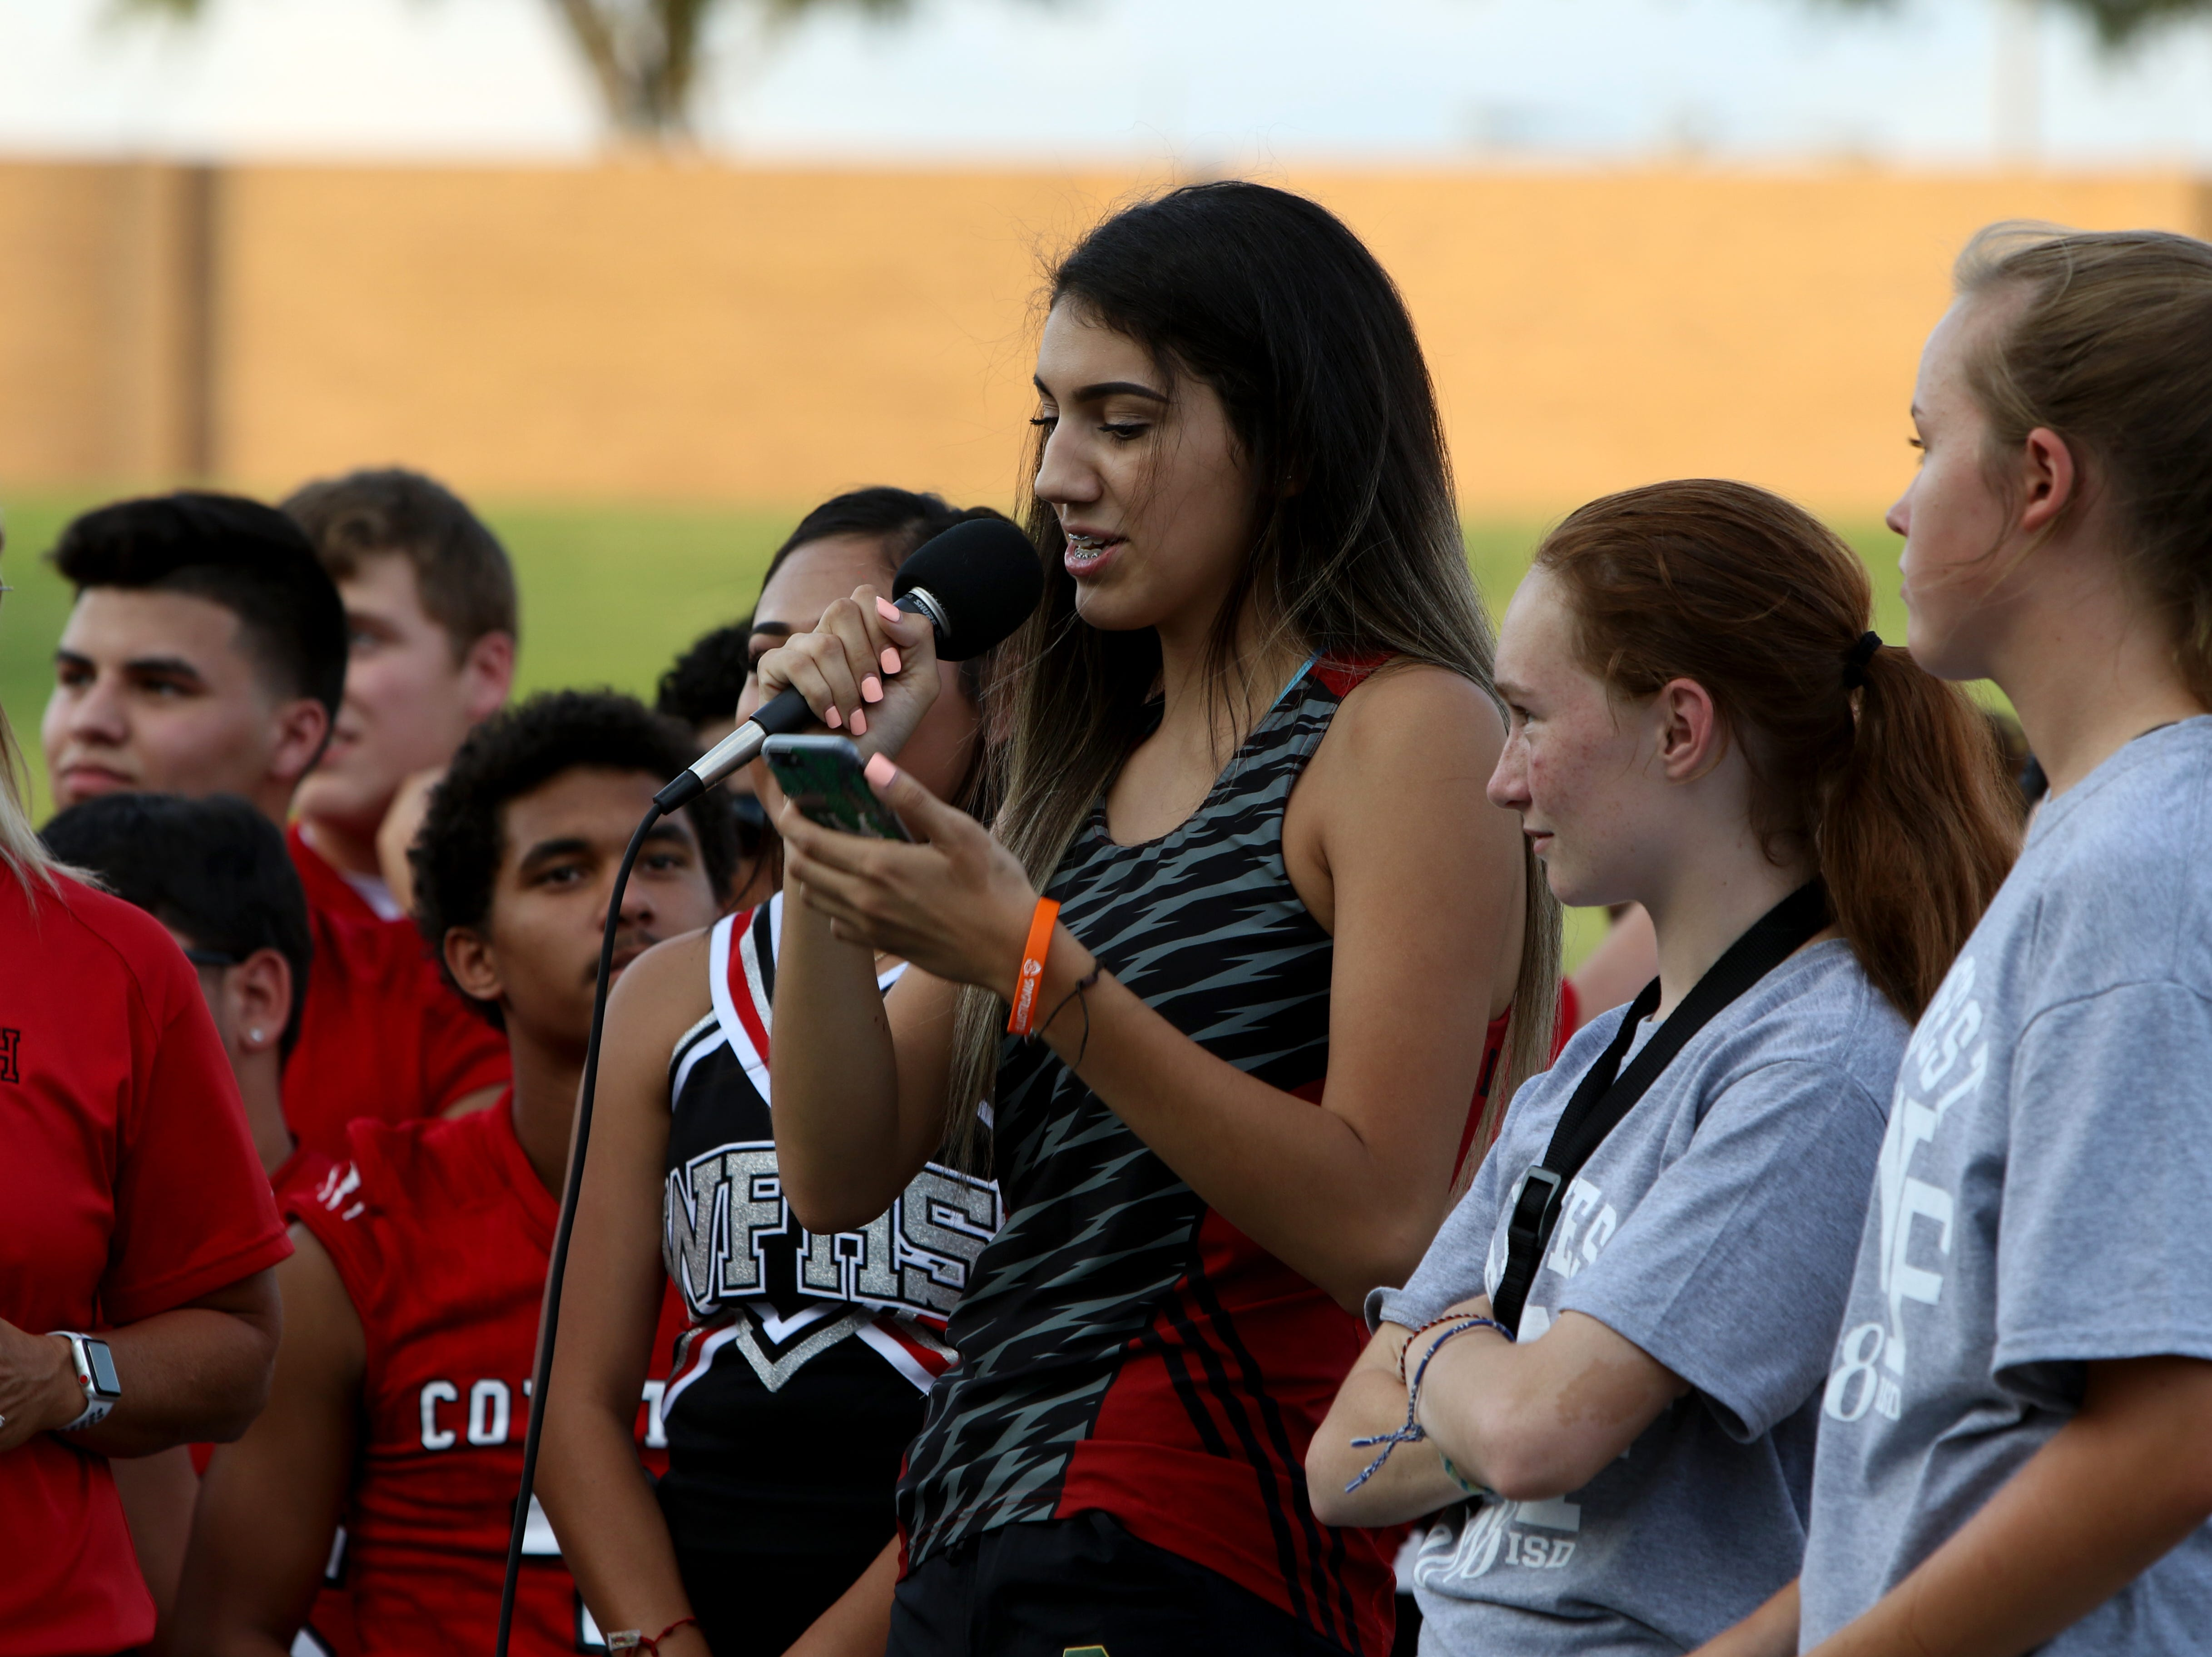 Members of the Wichita Falls High School cross country team speak to the crowd at the WFISD Fan Fest Tuesday, Aug. 7, 2018, at Memorial Stadium.